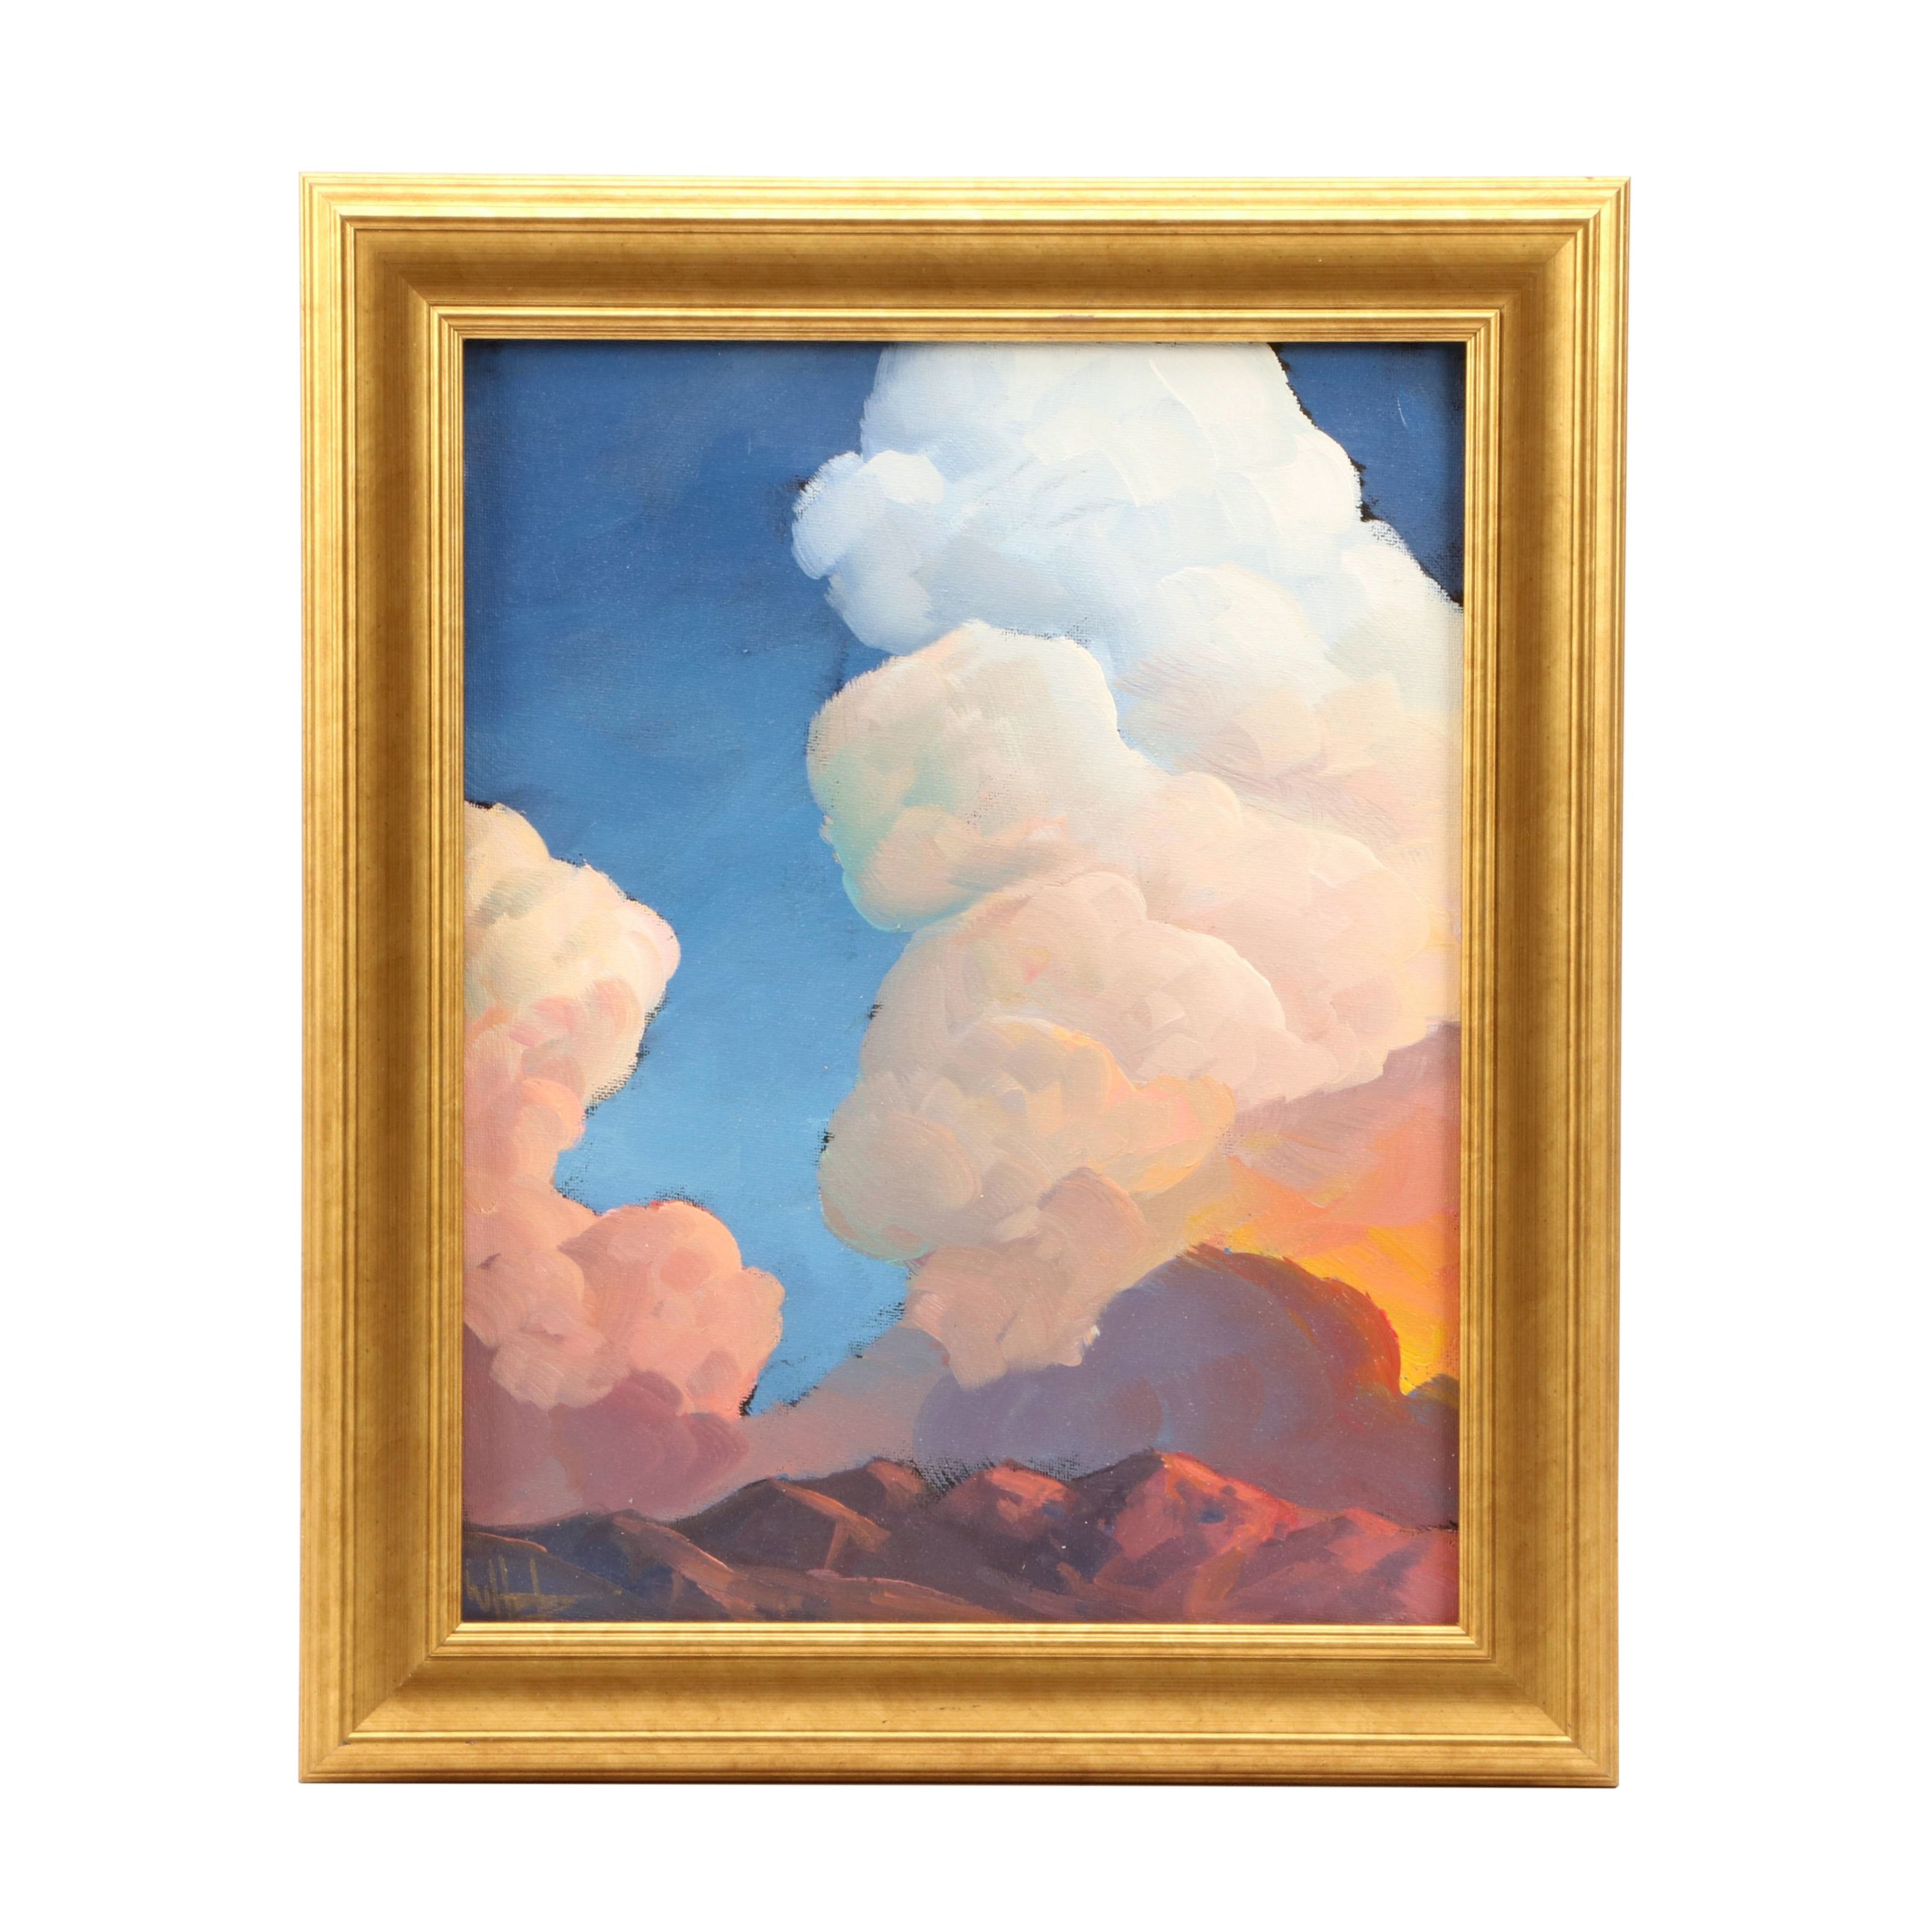 William Hawkins Oil Painting of Dramatic Cloud Formation